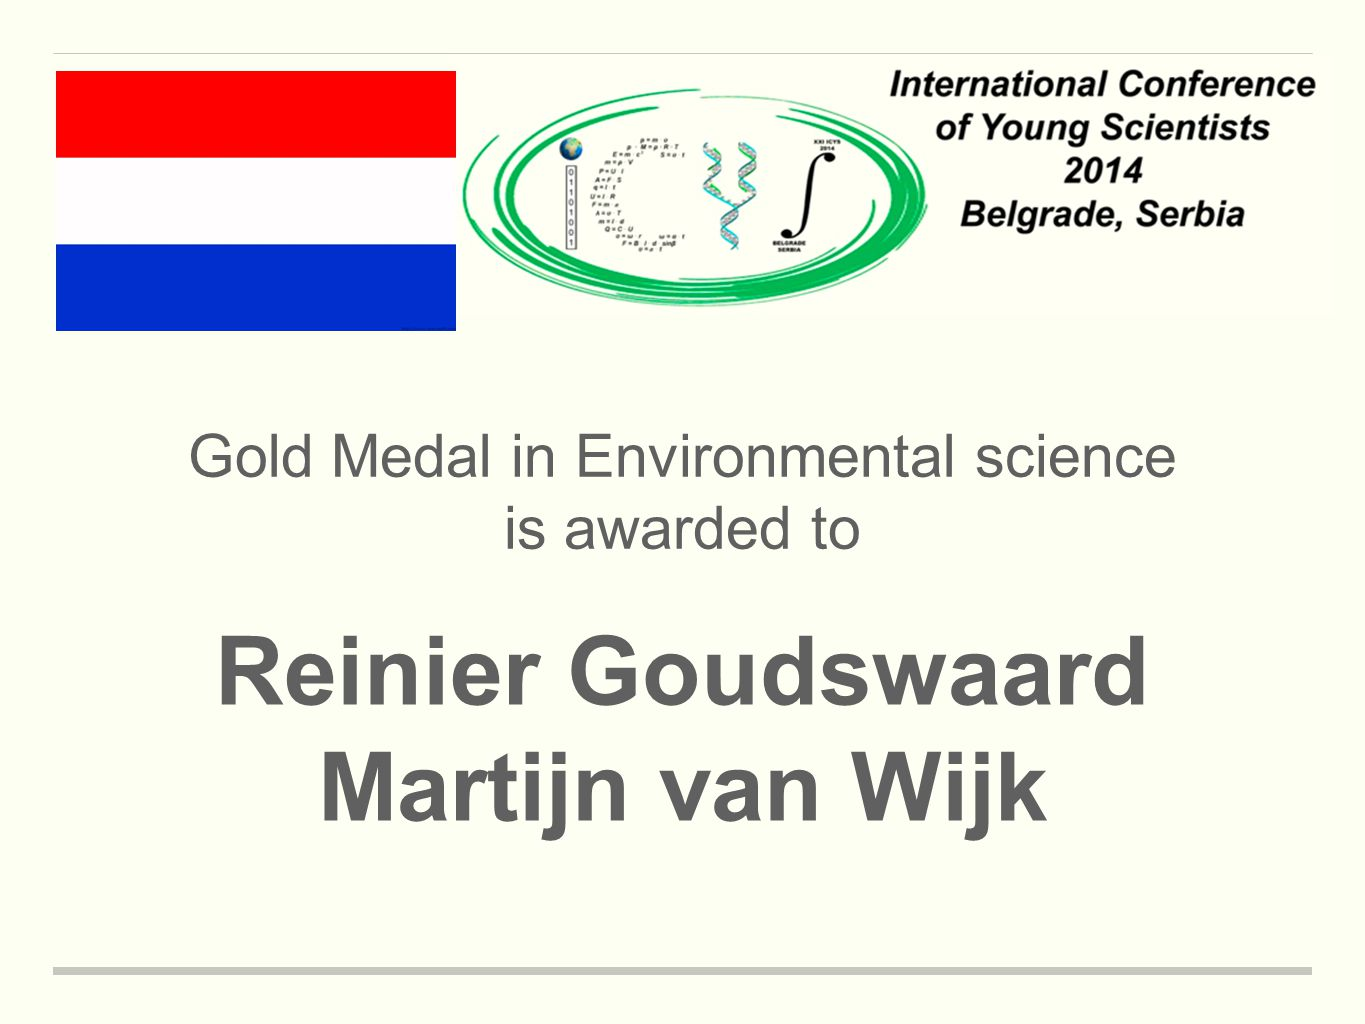 Gold Medal in Environmental science is awarded to Reinier Goudswaard Martijn van Wijk